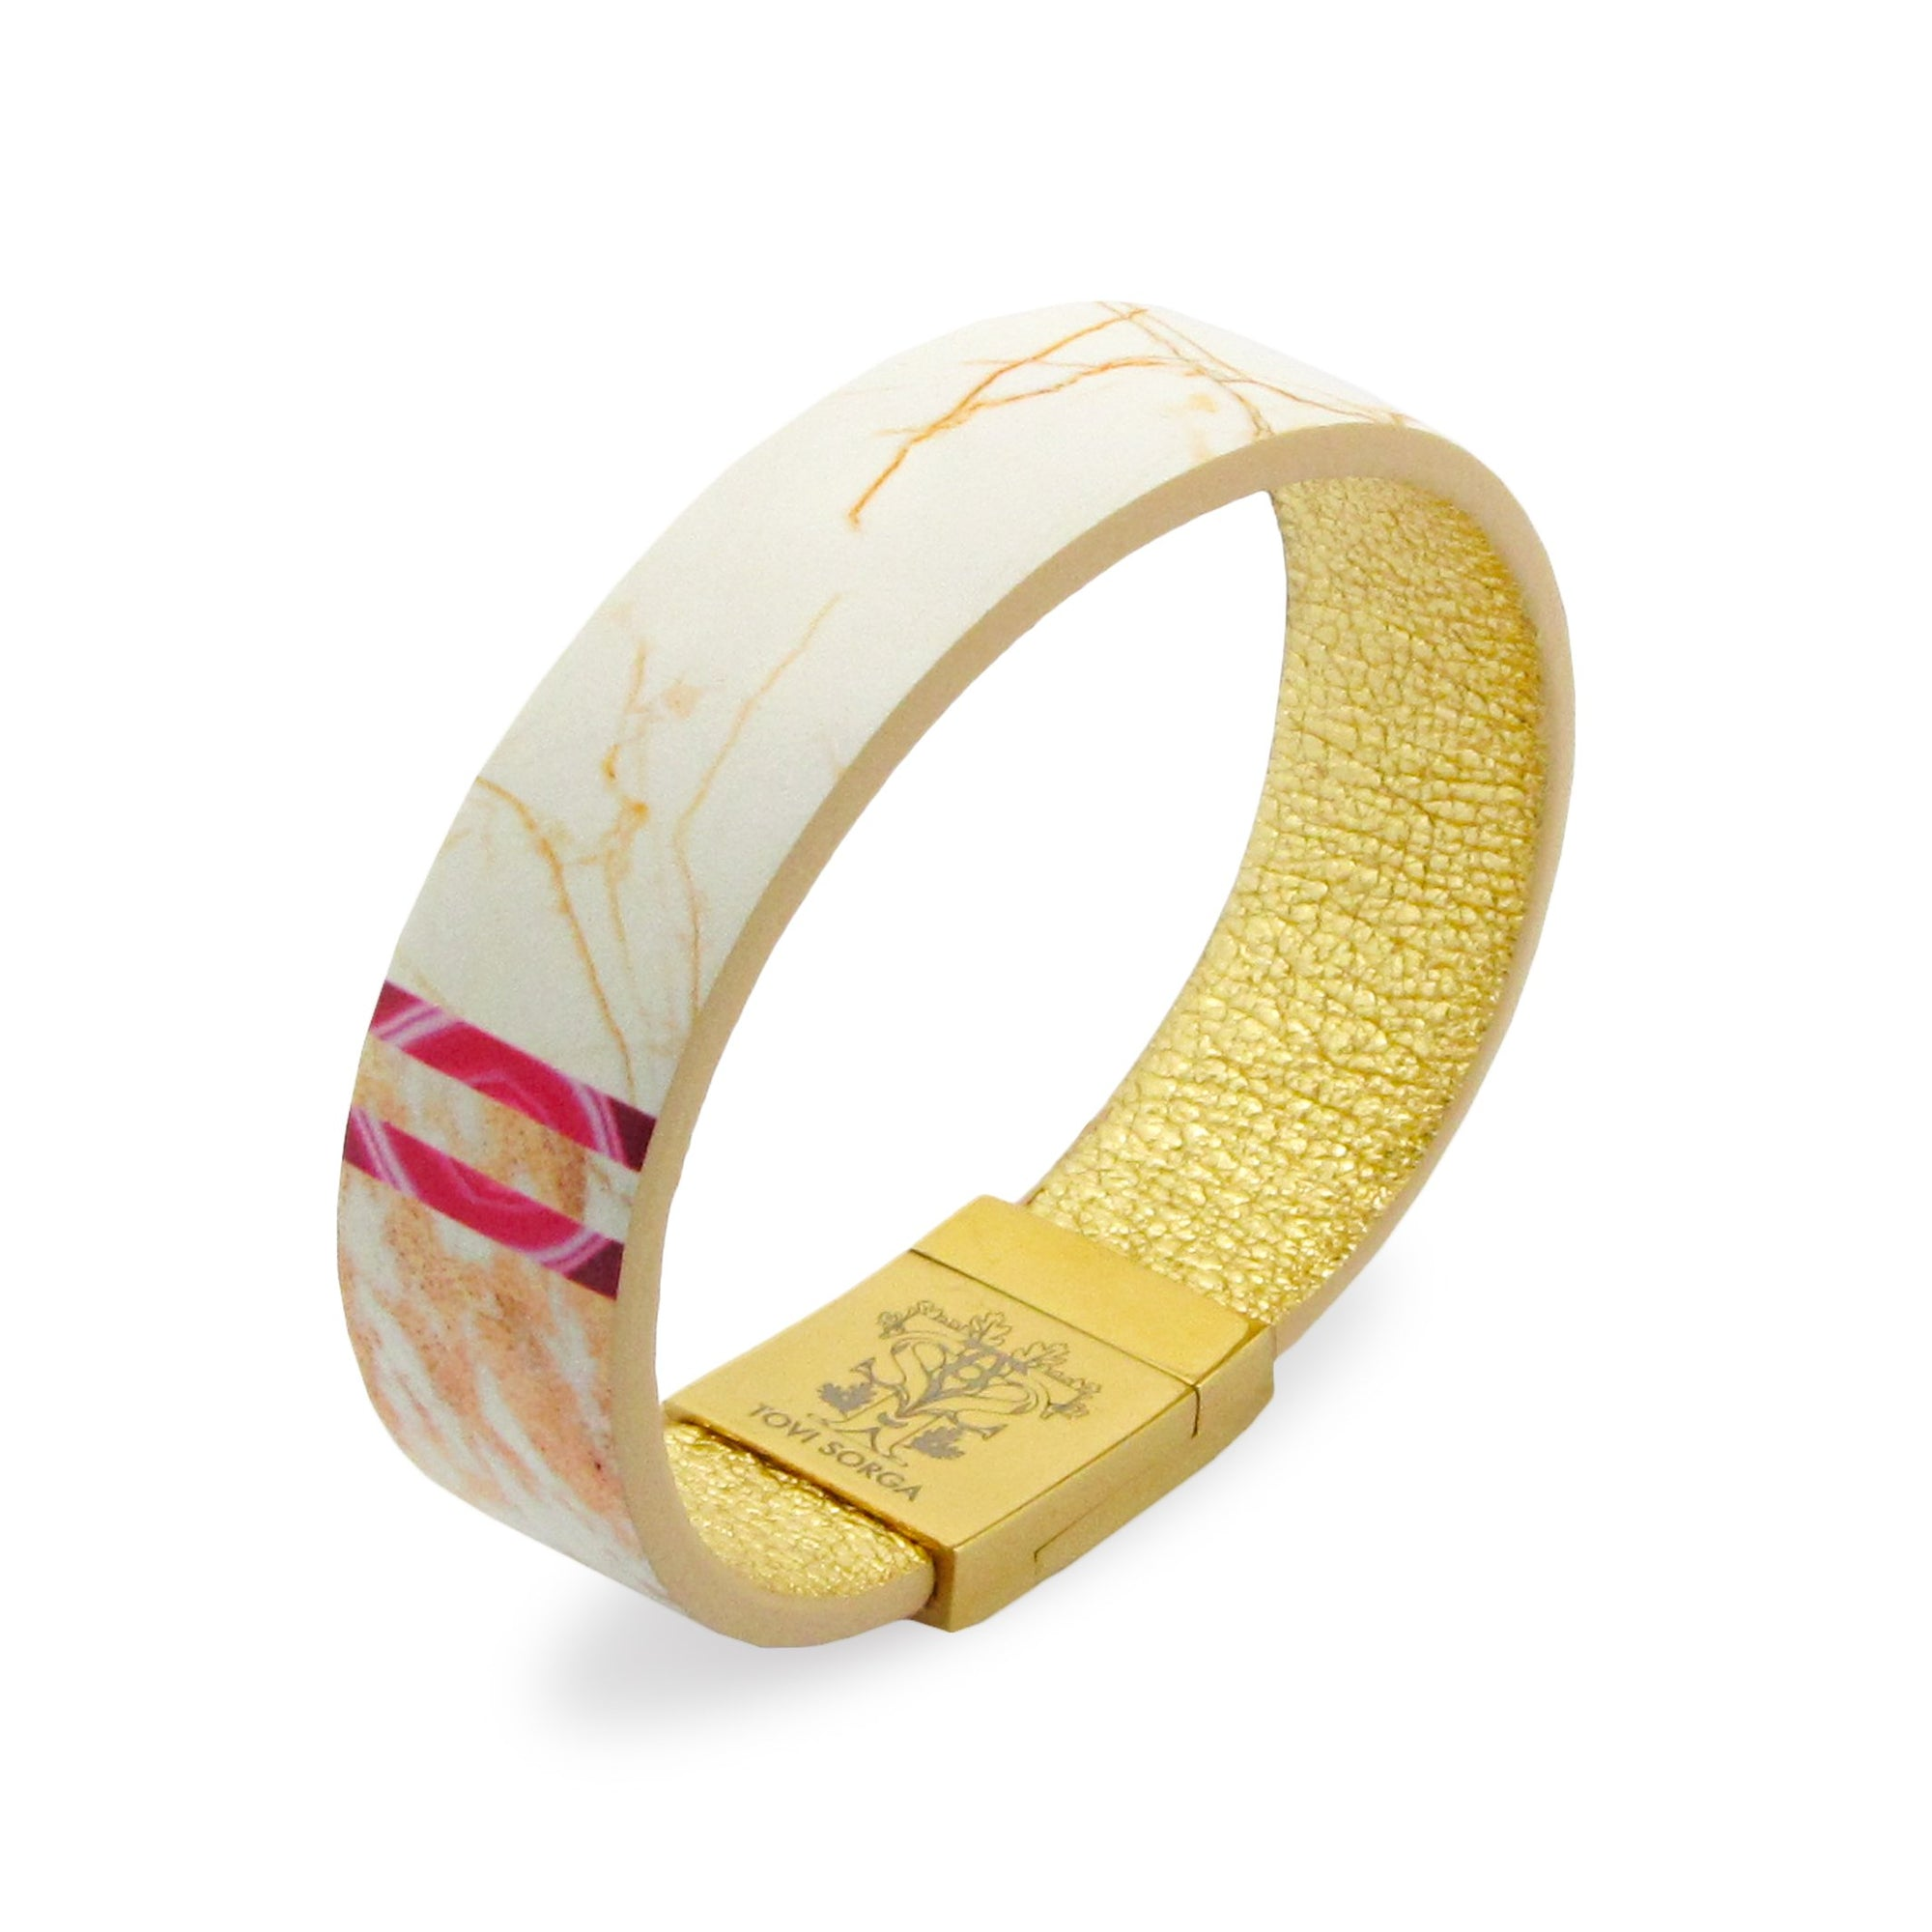 Leather Contactless Payment Bracelet: White Marble